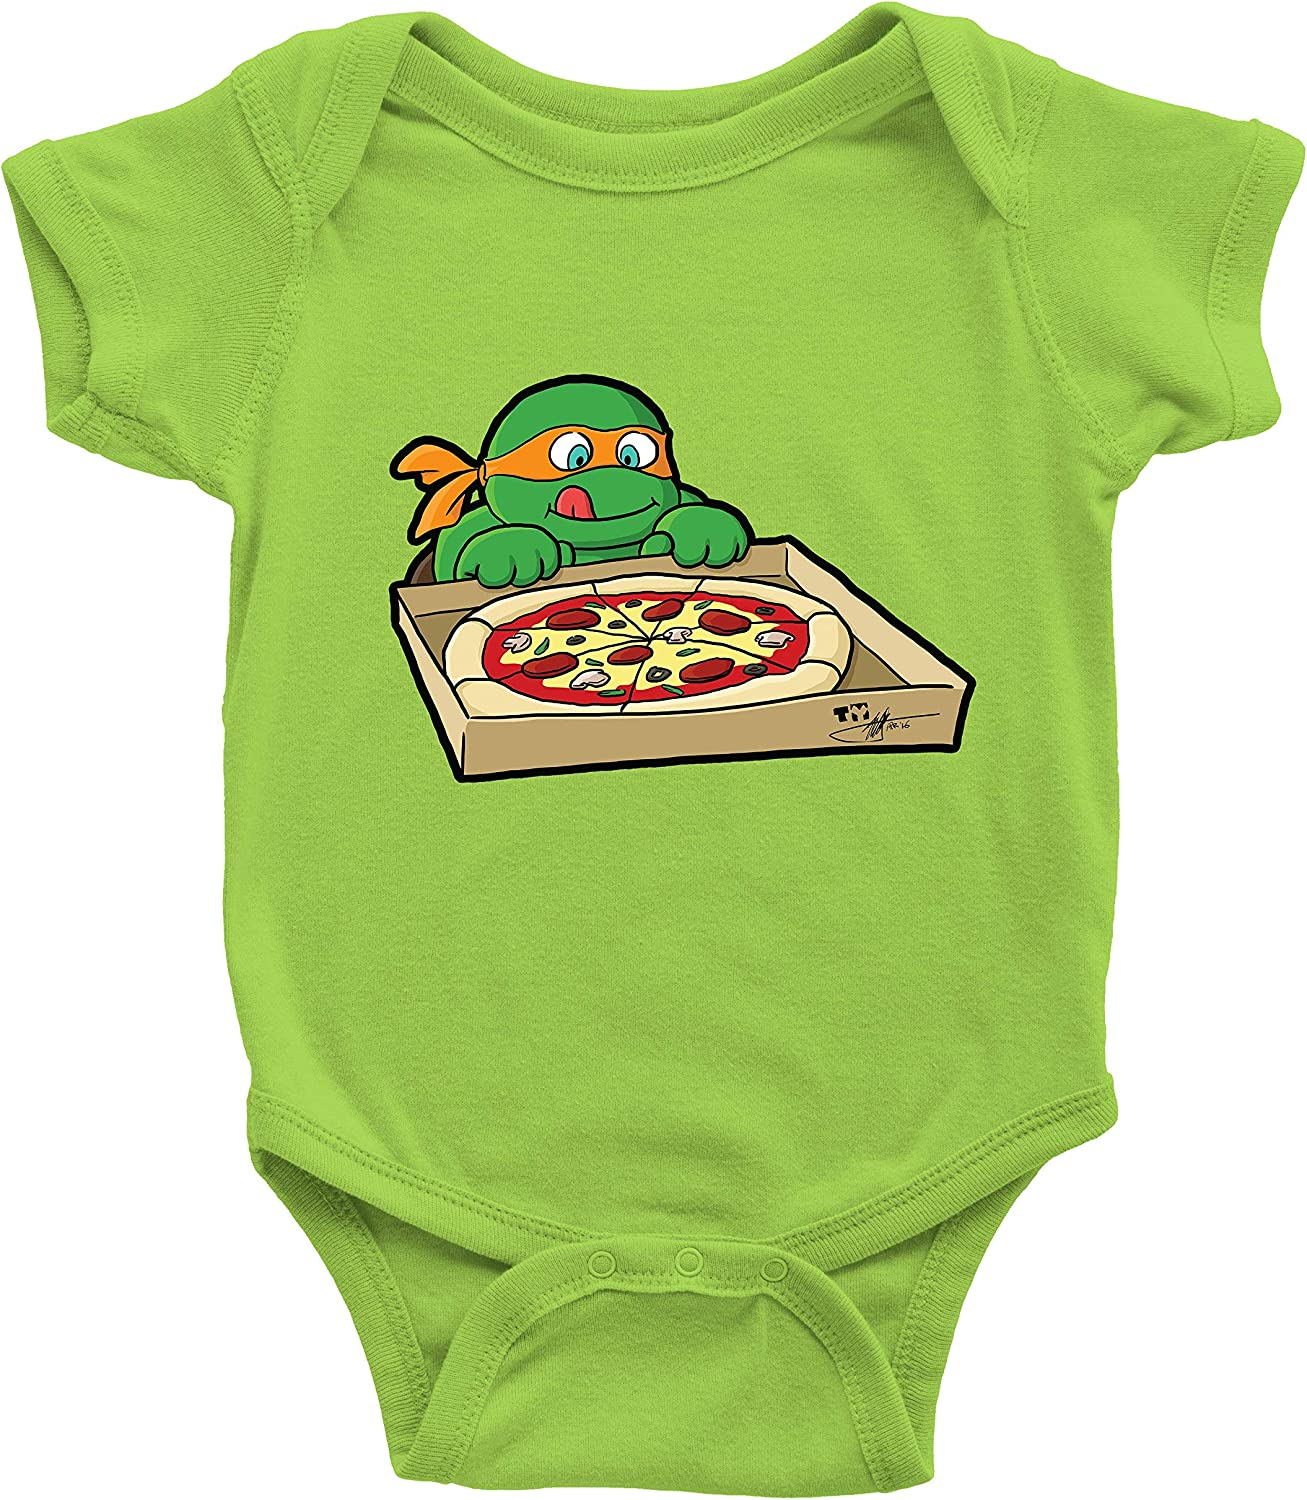 Hungry Ninja Infant Baby Popular brand in the world Clothes Babys Romper Bodysuits Sale Jumpsuit